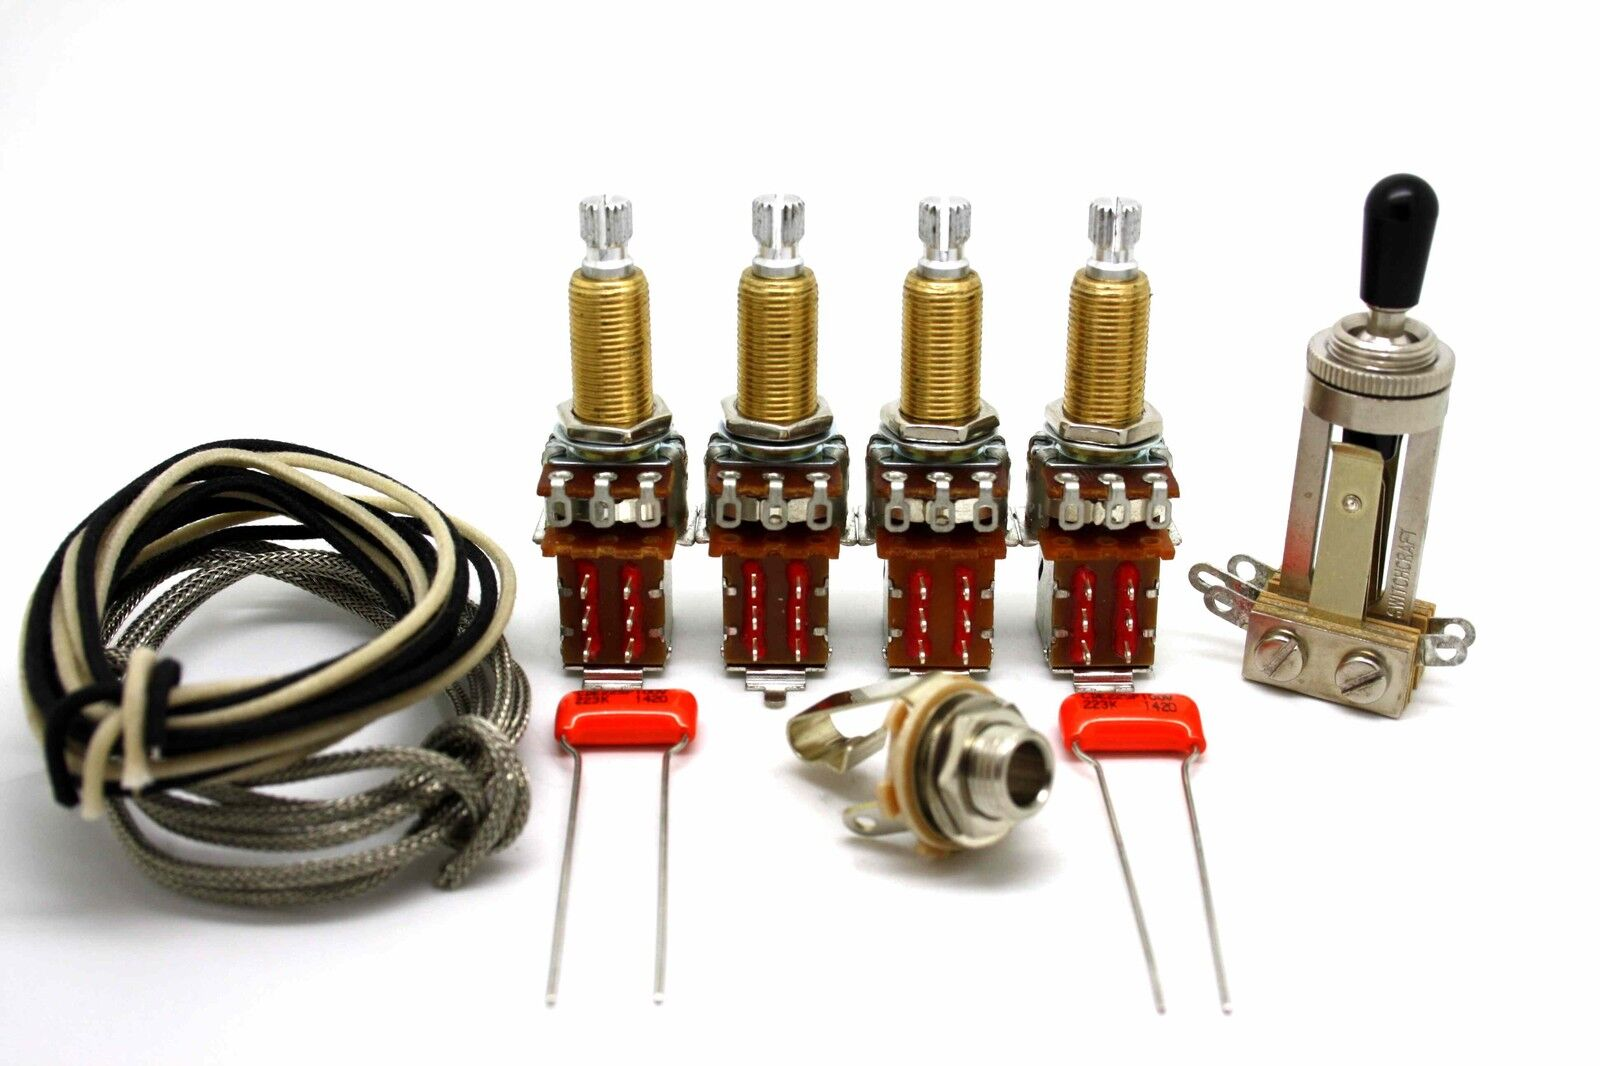 Strange Deluxe Vintage Wiring Kit Push Pull Long Shaft Jimmy Page For Gibson Wiring Digital Resources Instshebarightsorg